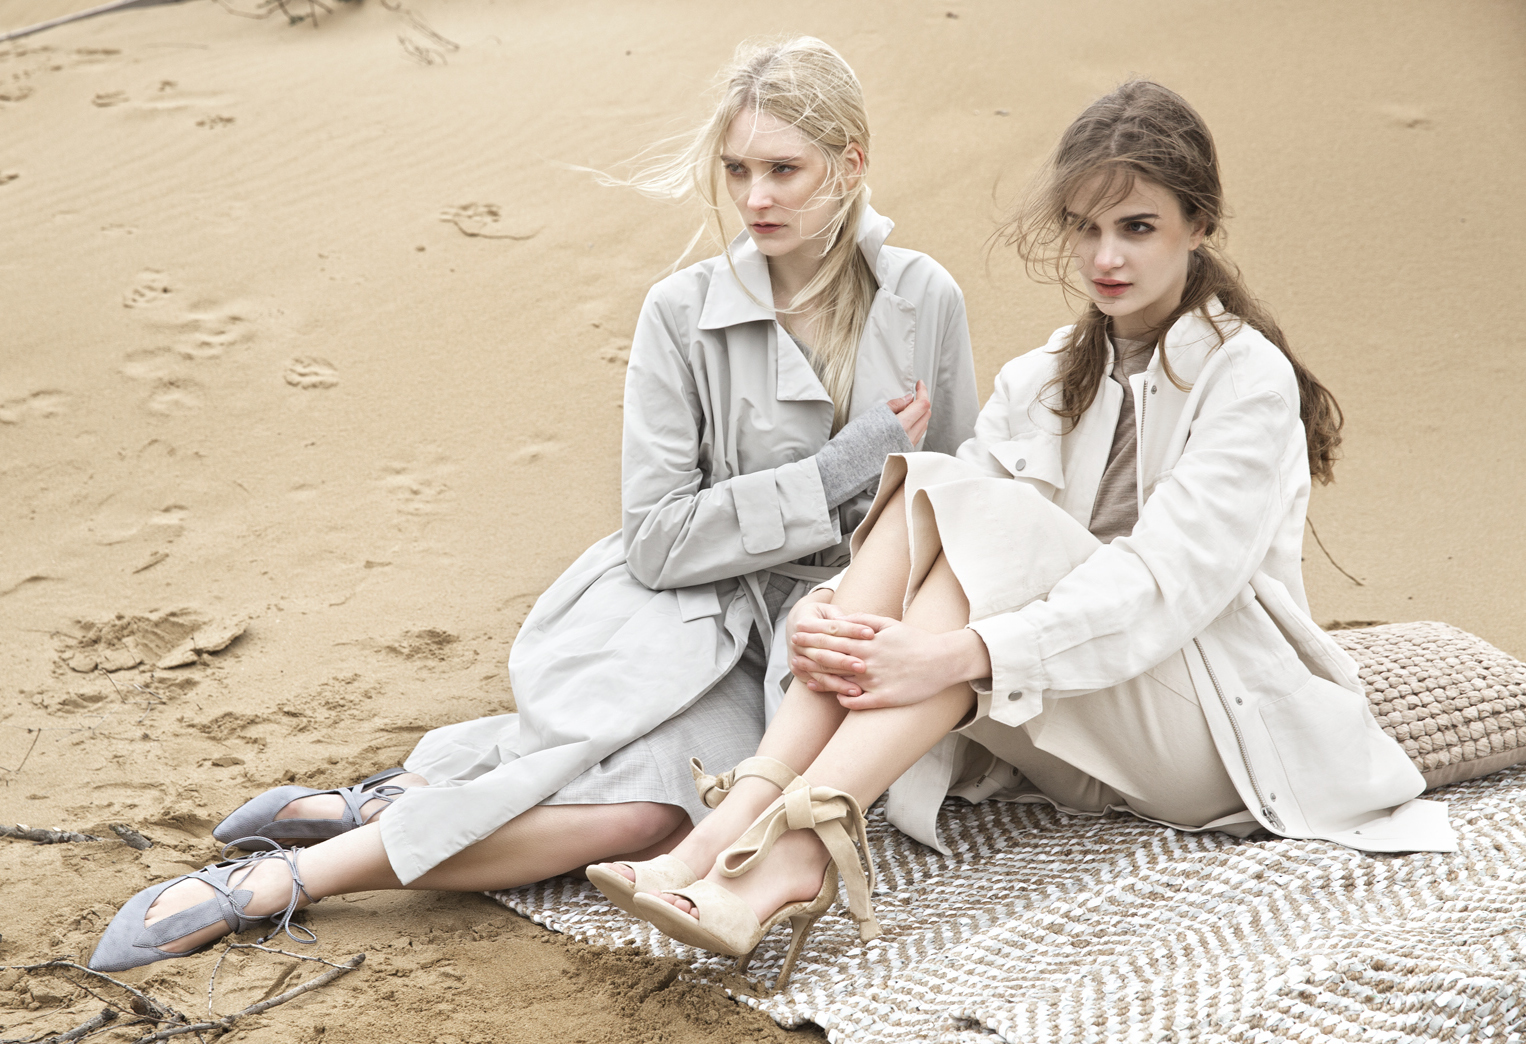 anu koski and polina kaira by semih kanmaz for cosmopolitan turkey march 2015